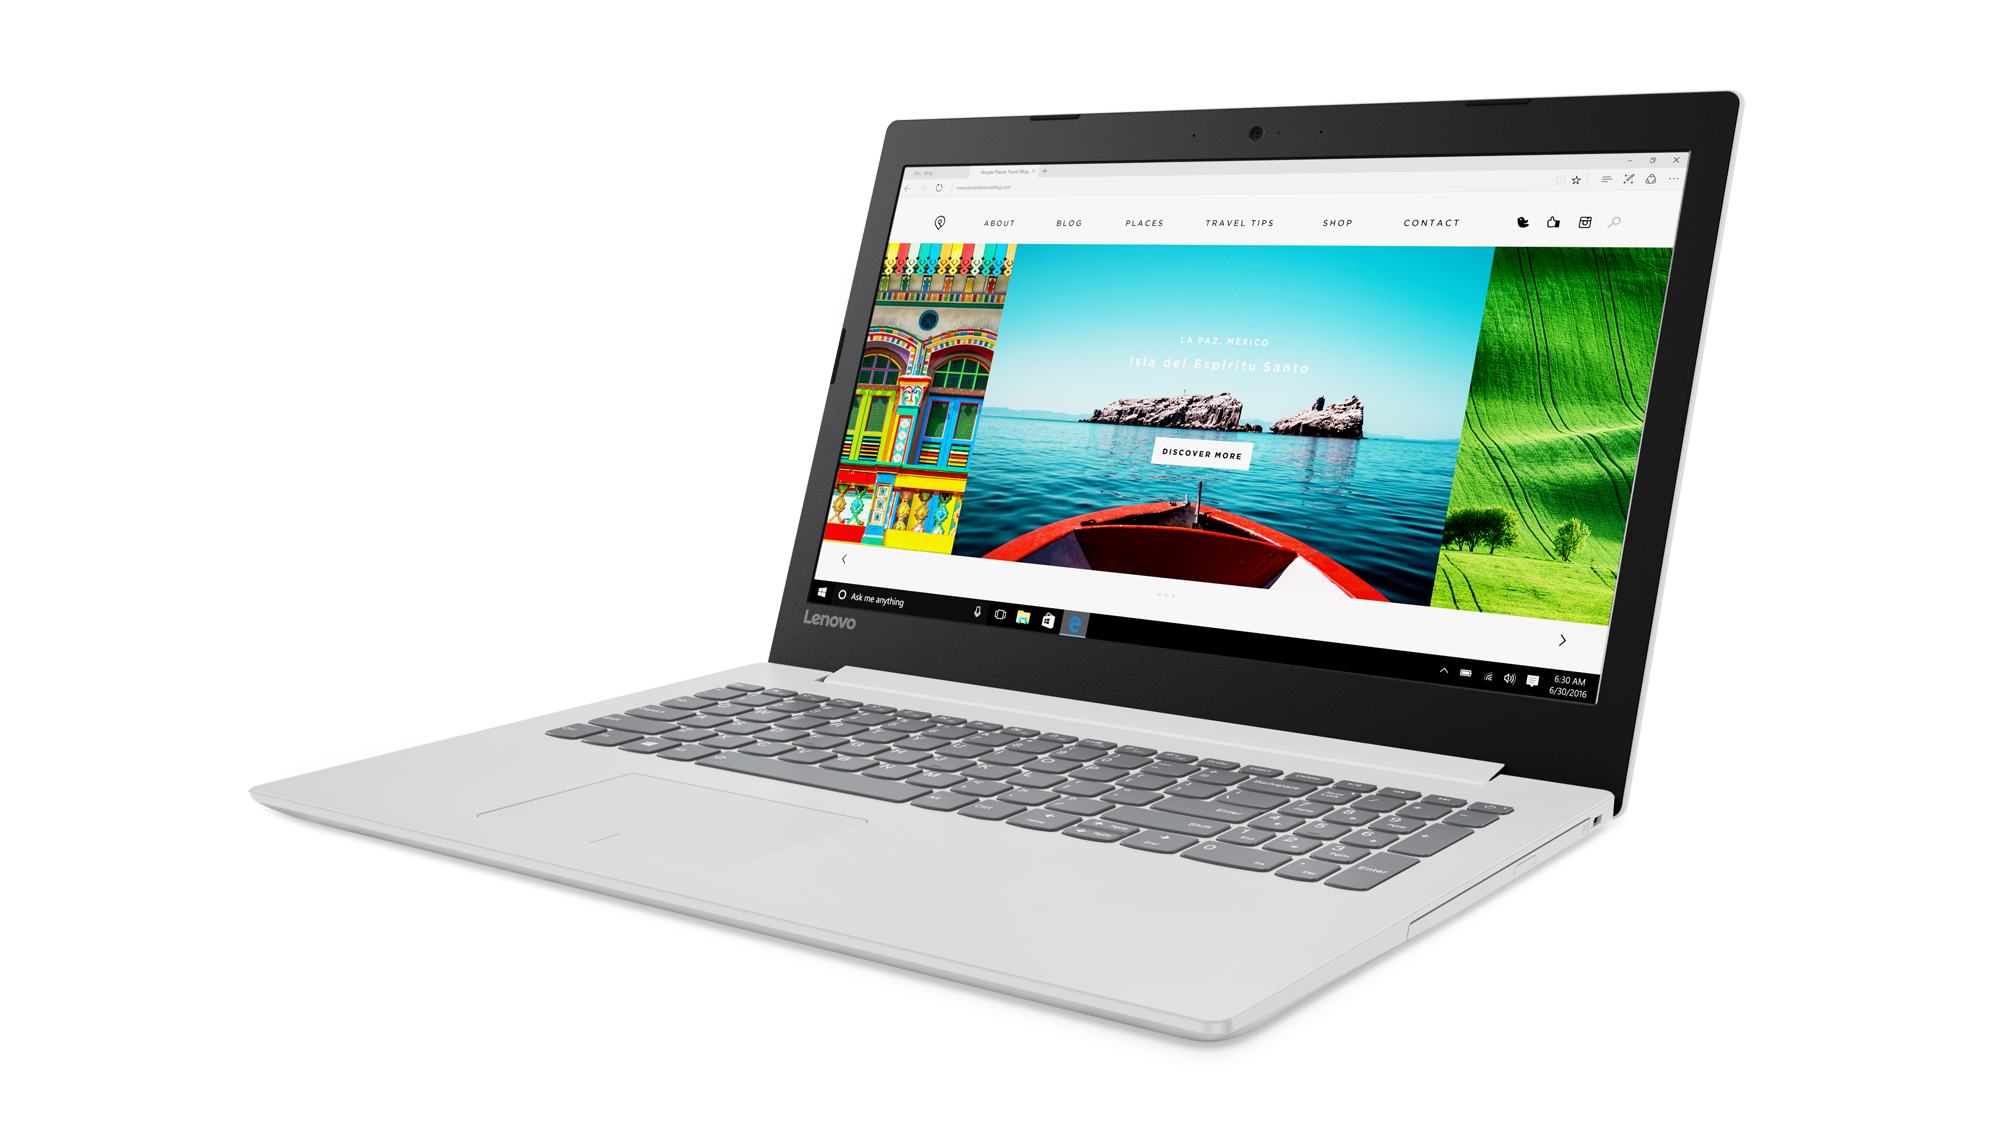 "Lenovo IdeaPad 320-15AST AMD E2-9000 1,80GHz/4GB/500GB/15,6"" HD/AG/WIN10 bílá 80XV0065CK"